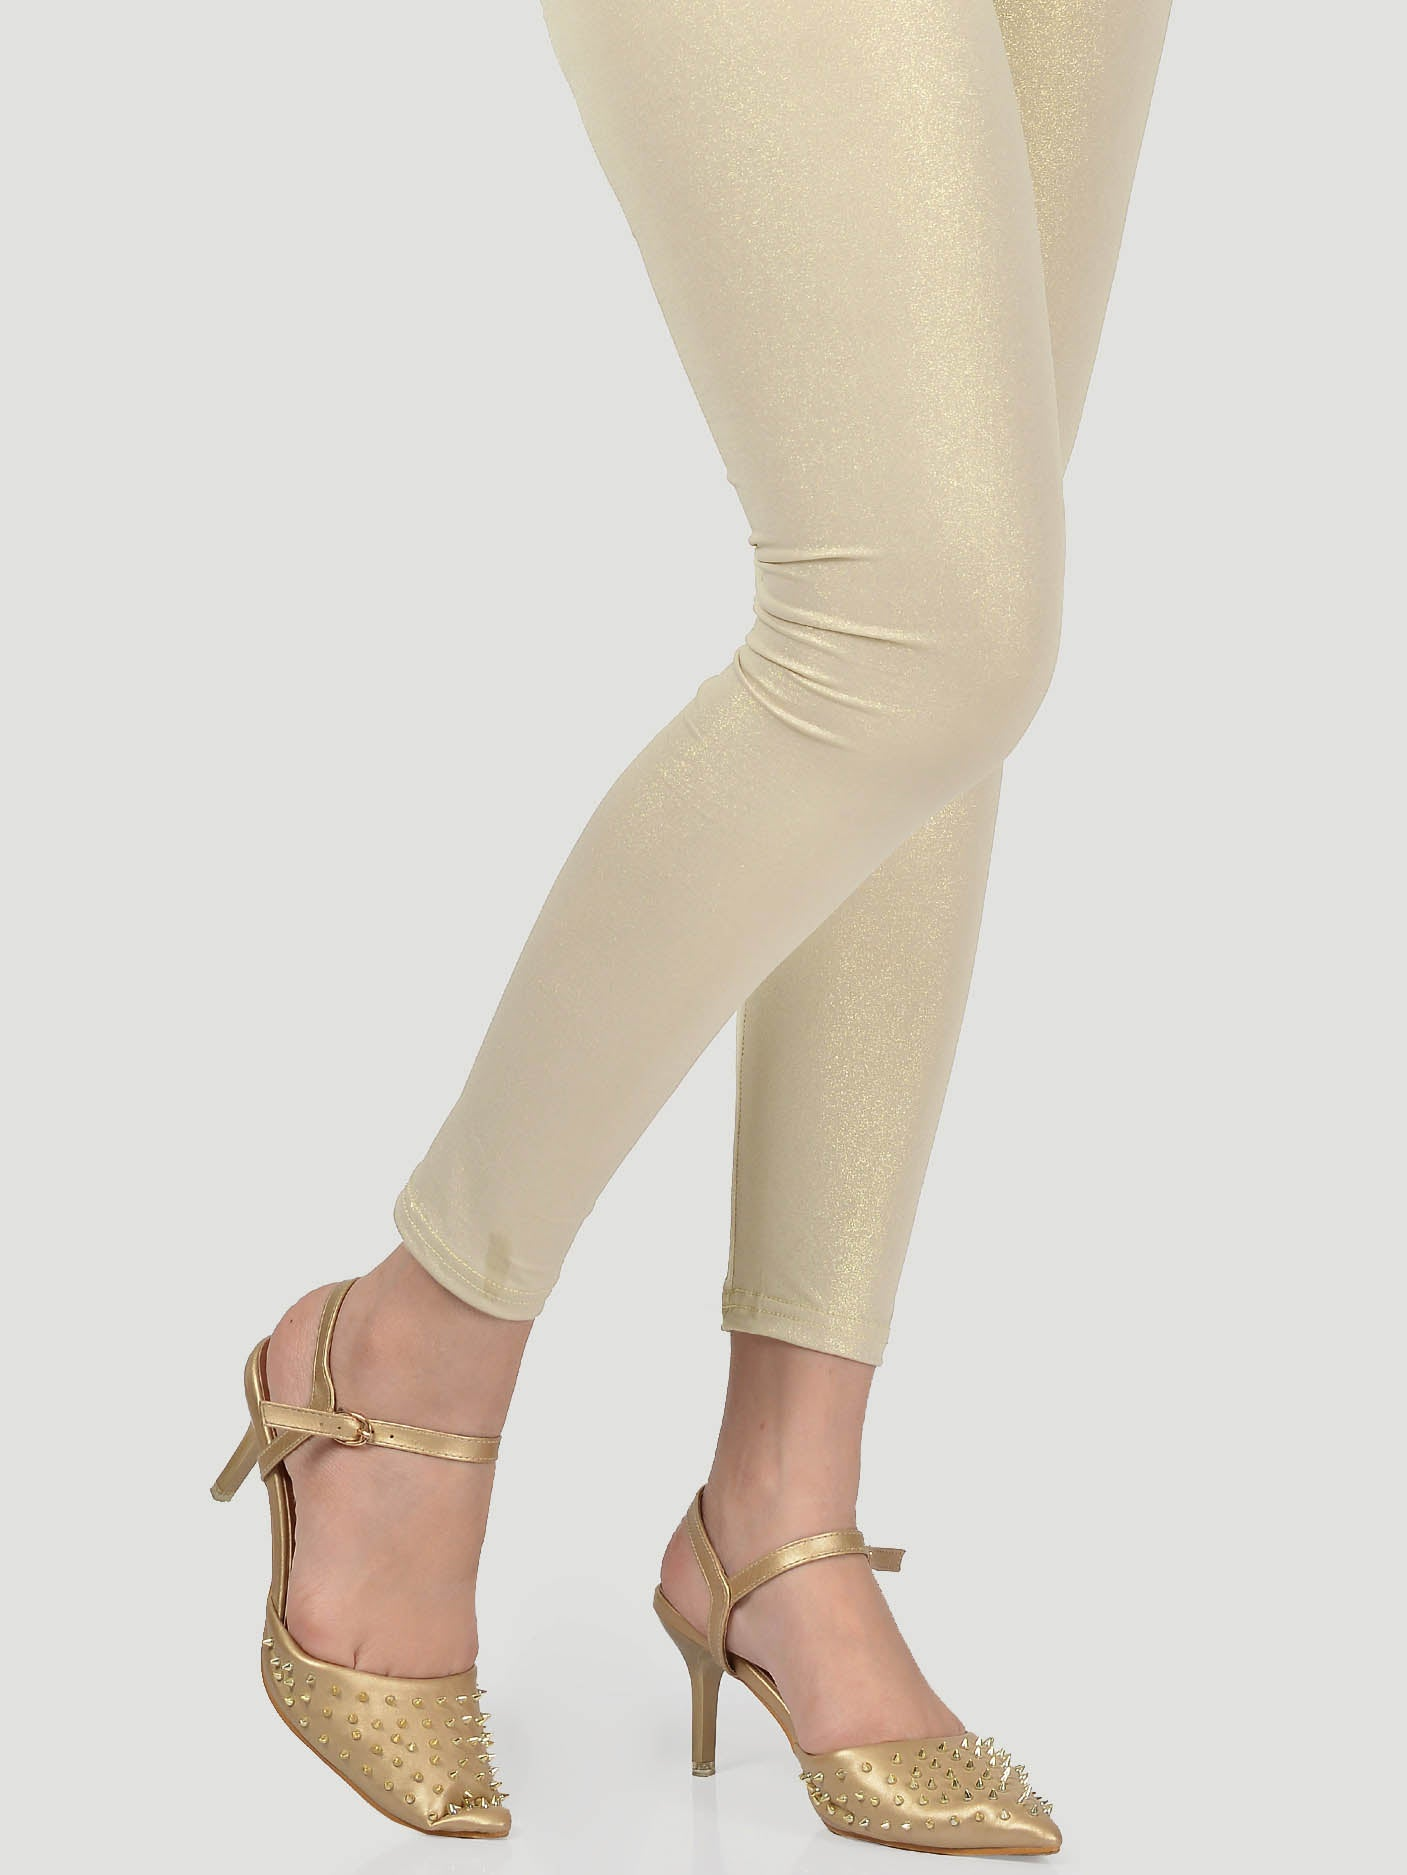 Shimmer Tights - Light Gold